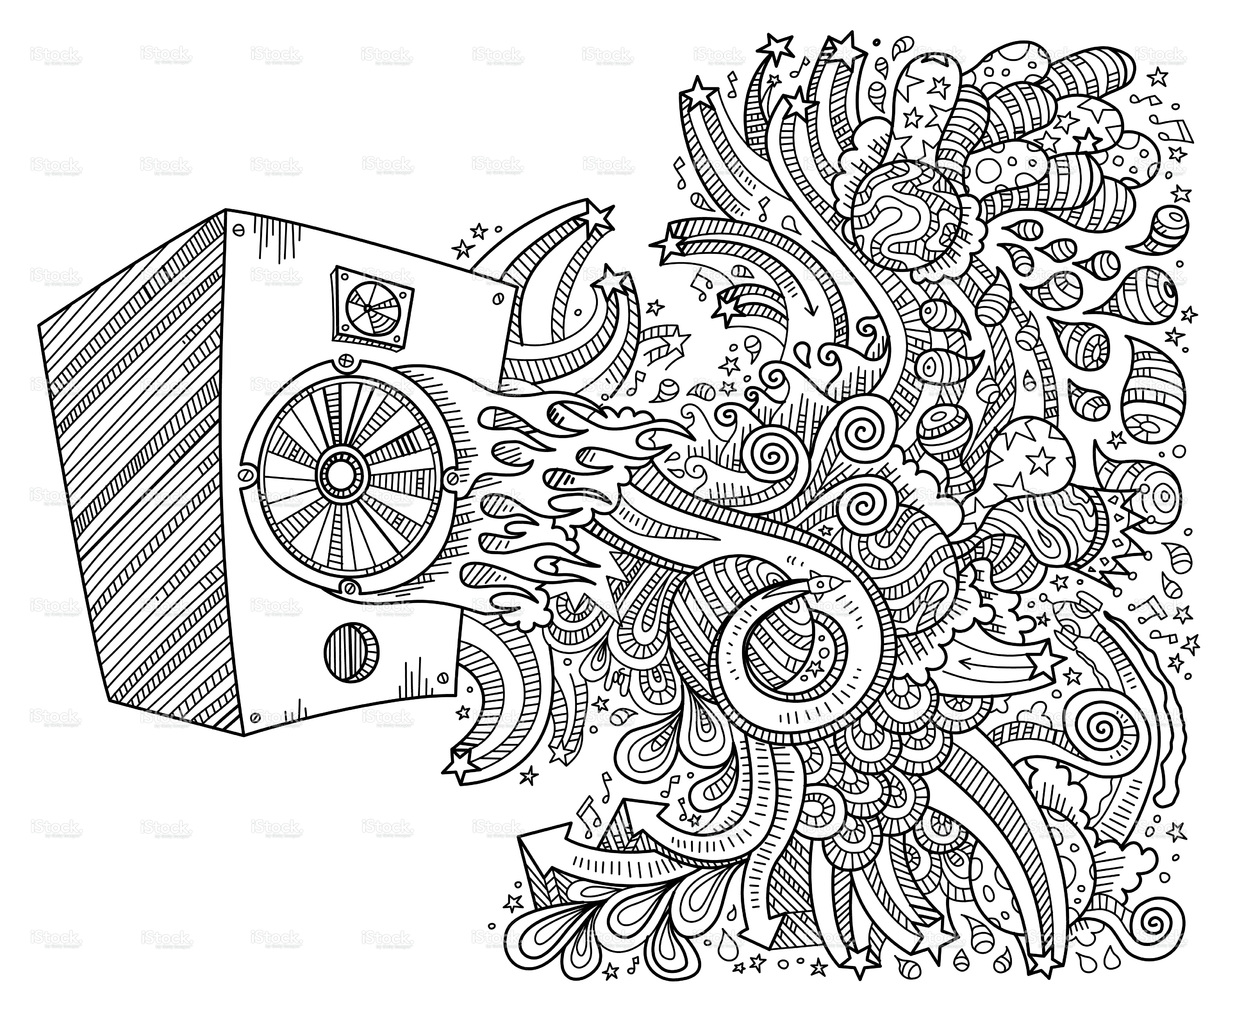 1235x1014 Speaker Doodles, Neat And Detailed, Strokes